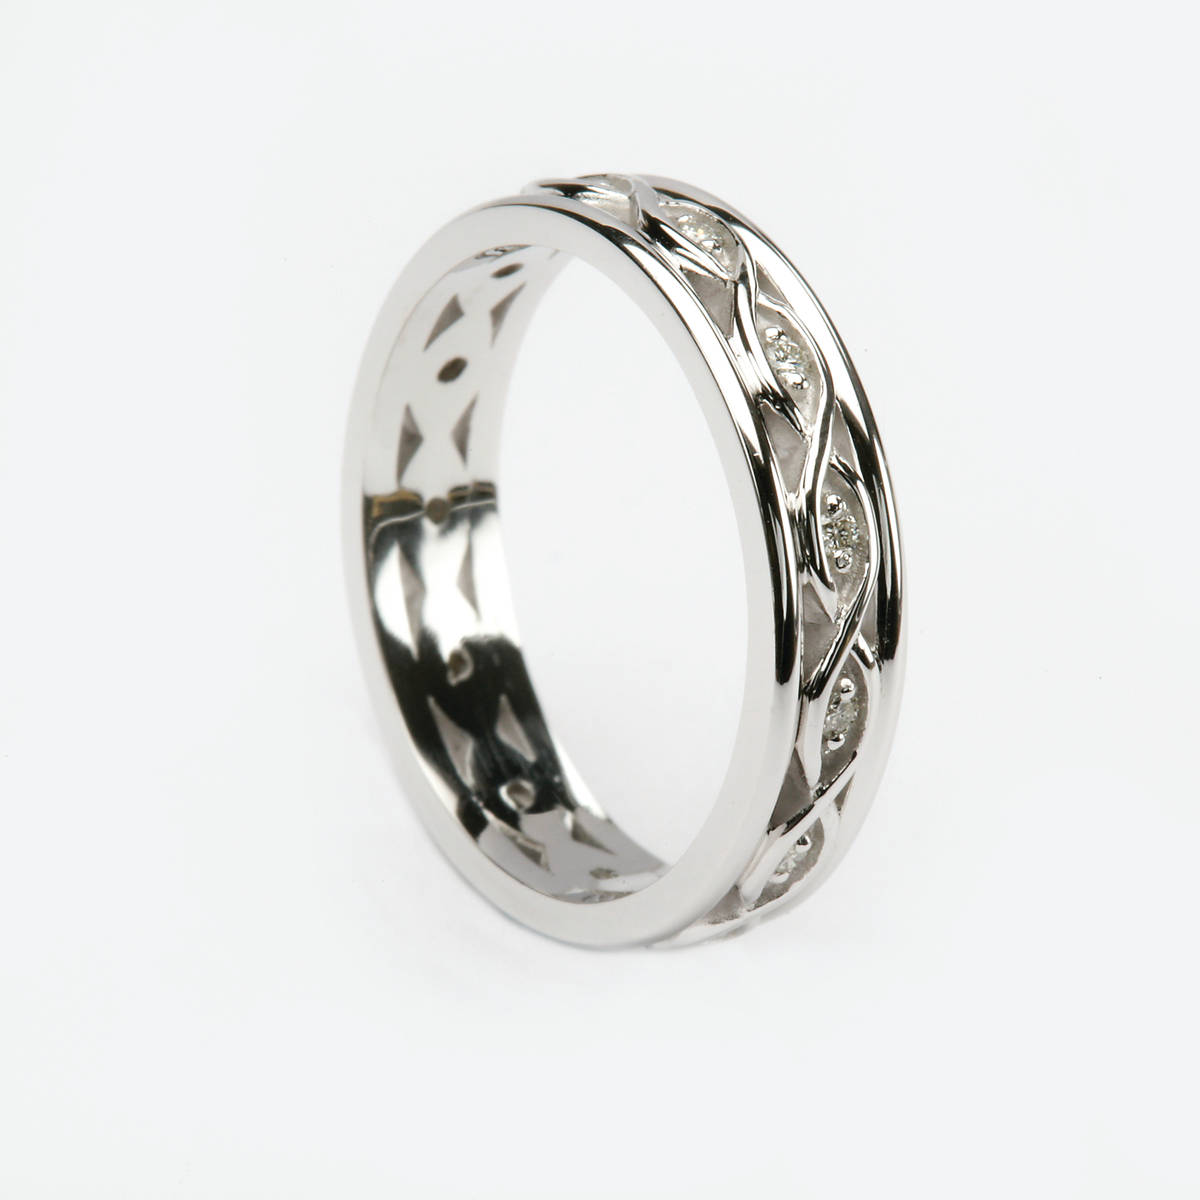 14 carat white gold ladies Celtic wedding band with light white gold simple knot design centre with white gold light rims.  Width: 4.5 mm